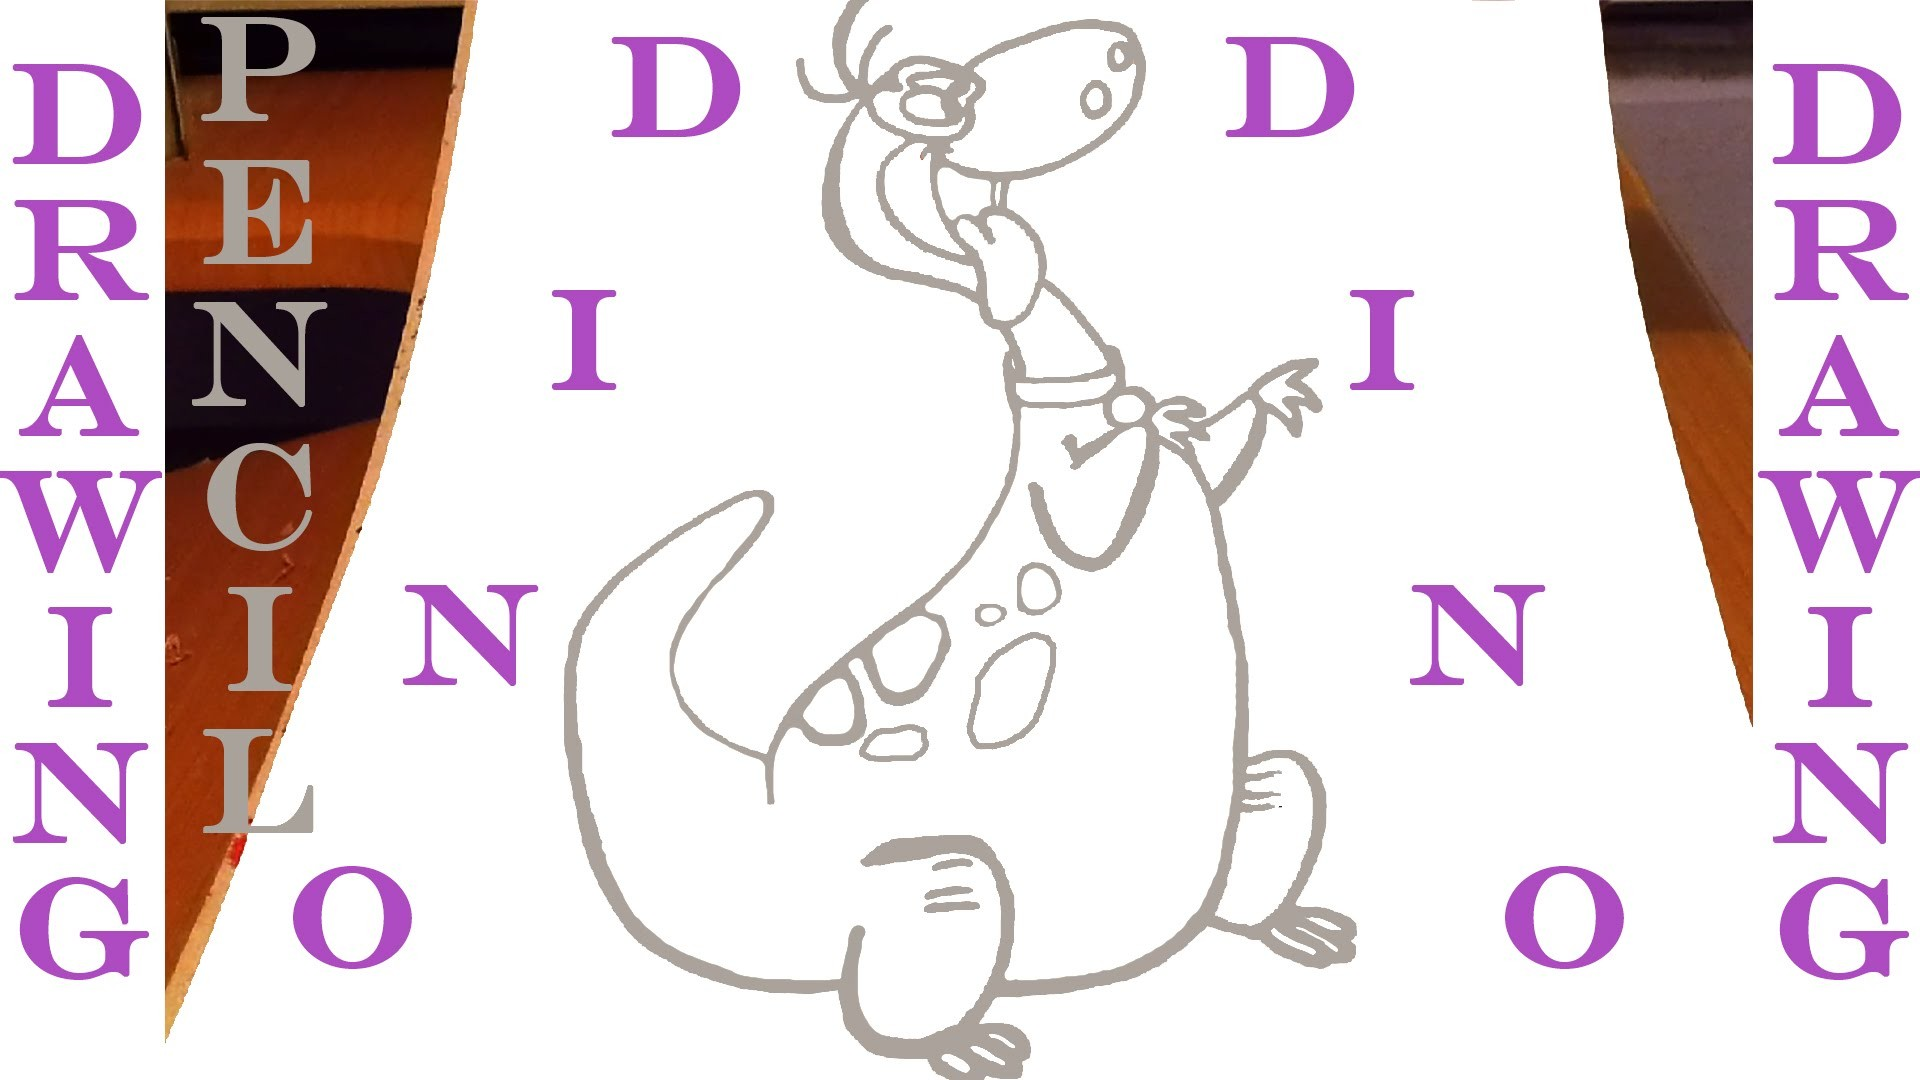 How to draw a Dinosaur DINO Easy - The Flintstones - Cartoon Network | PENCIL | SPEEDY